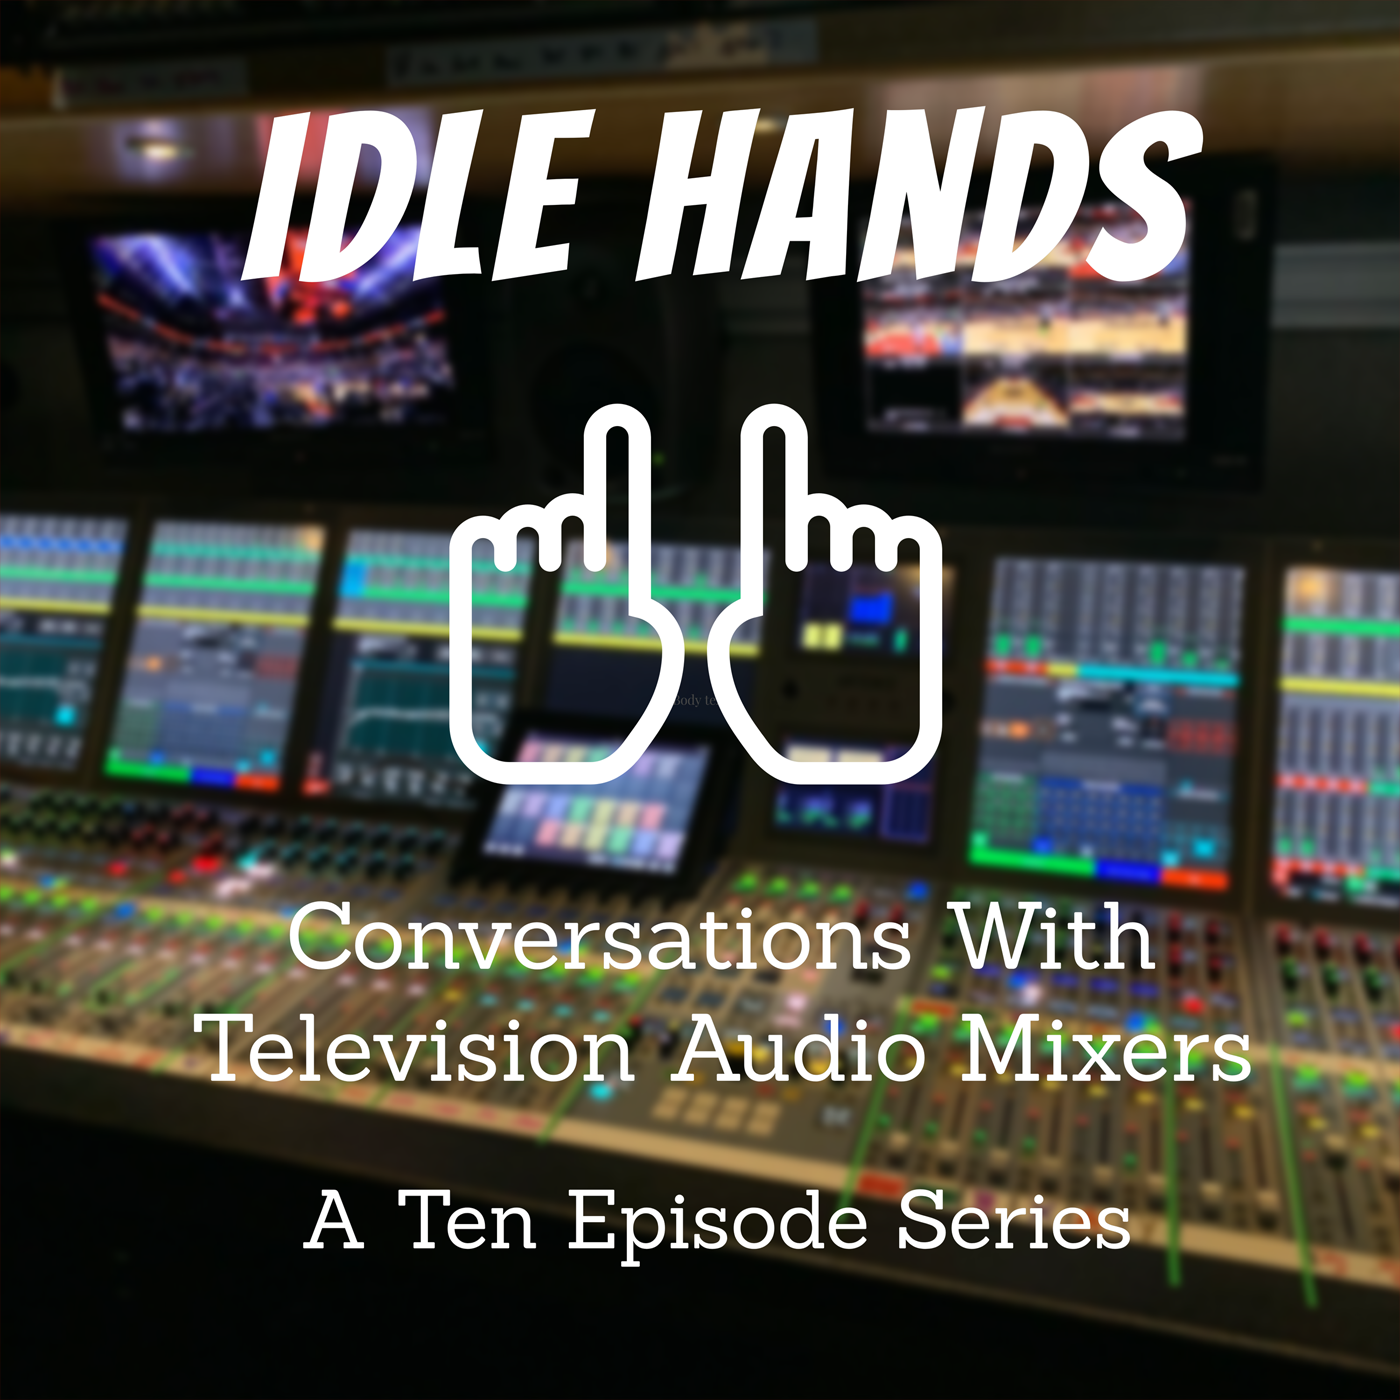 Idle Hands Podcast by Andrew Stoakley